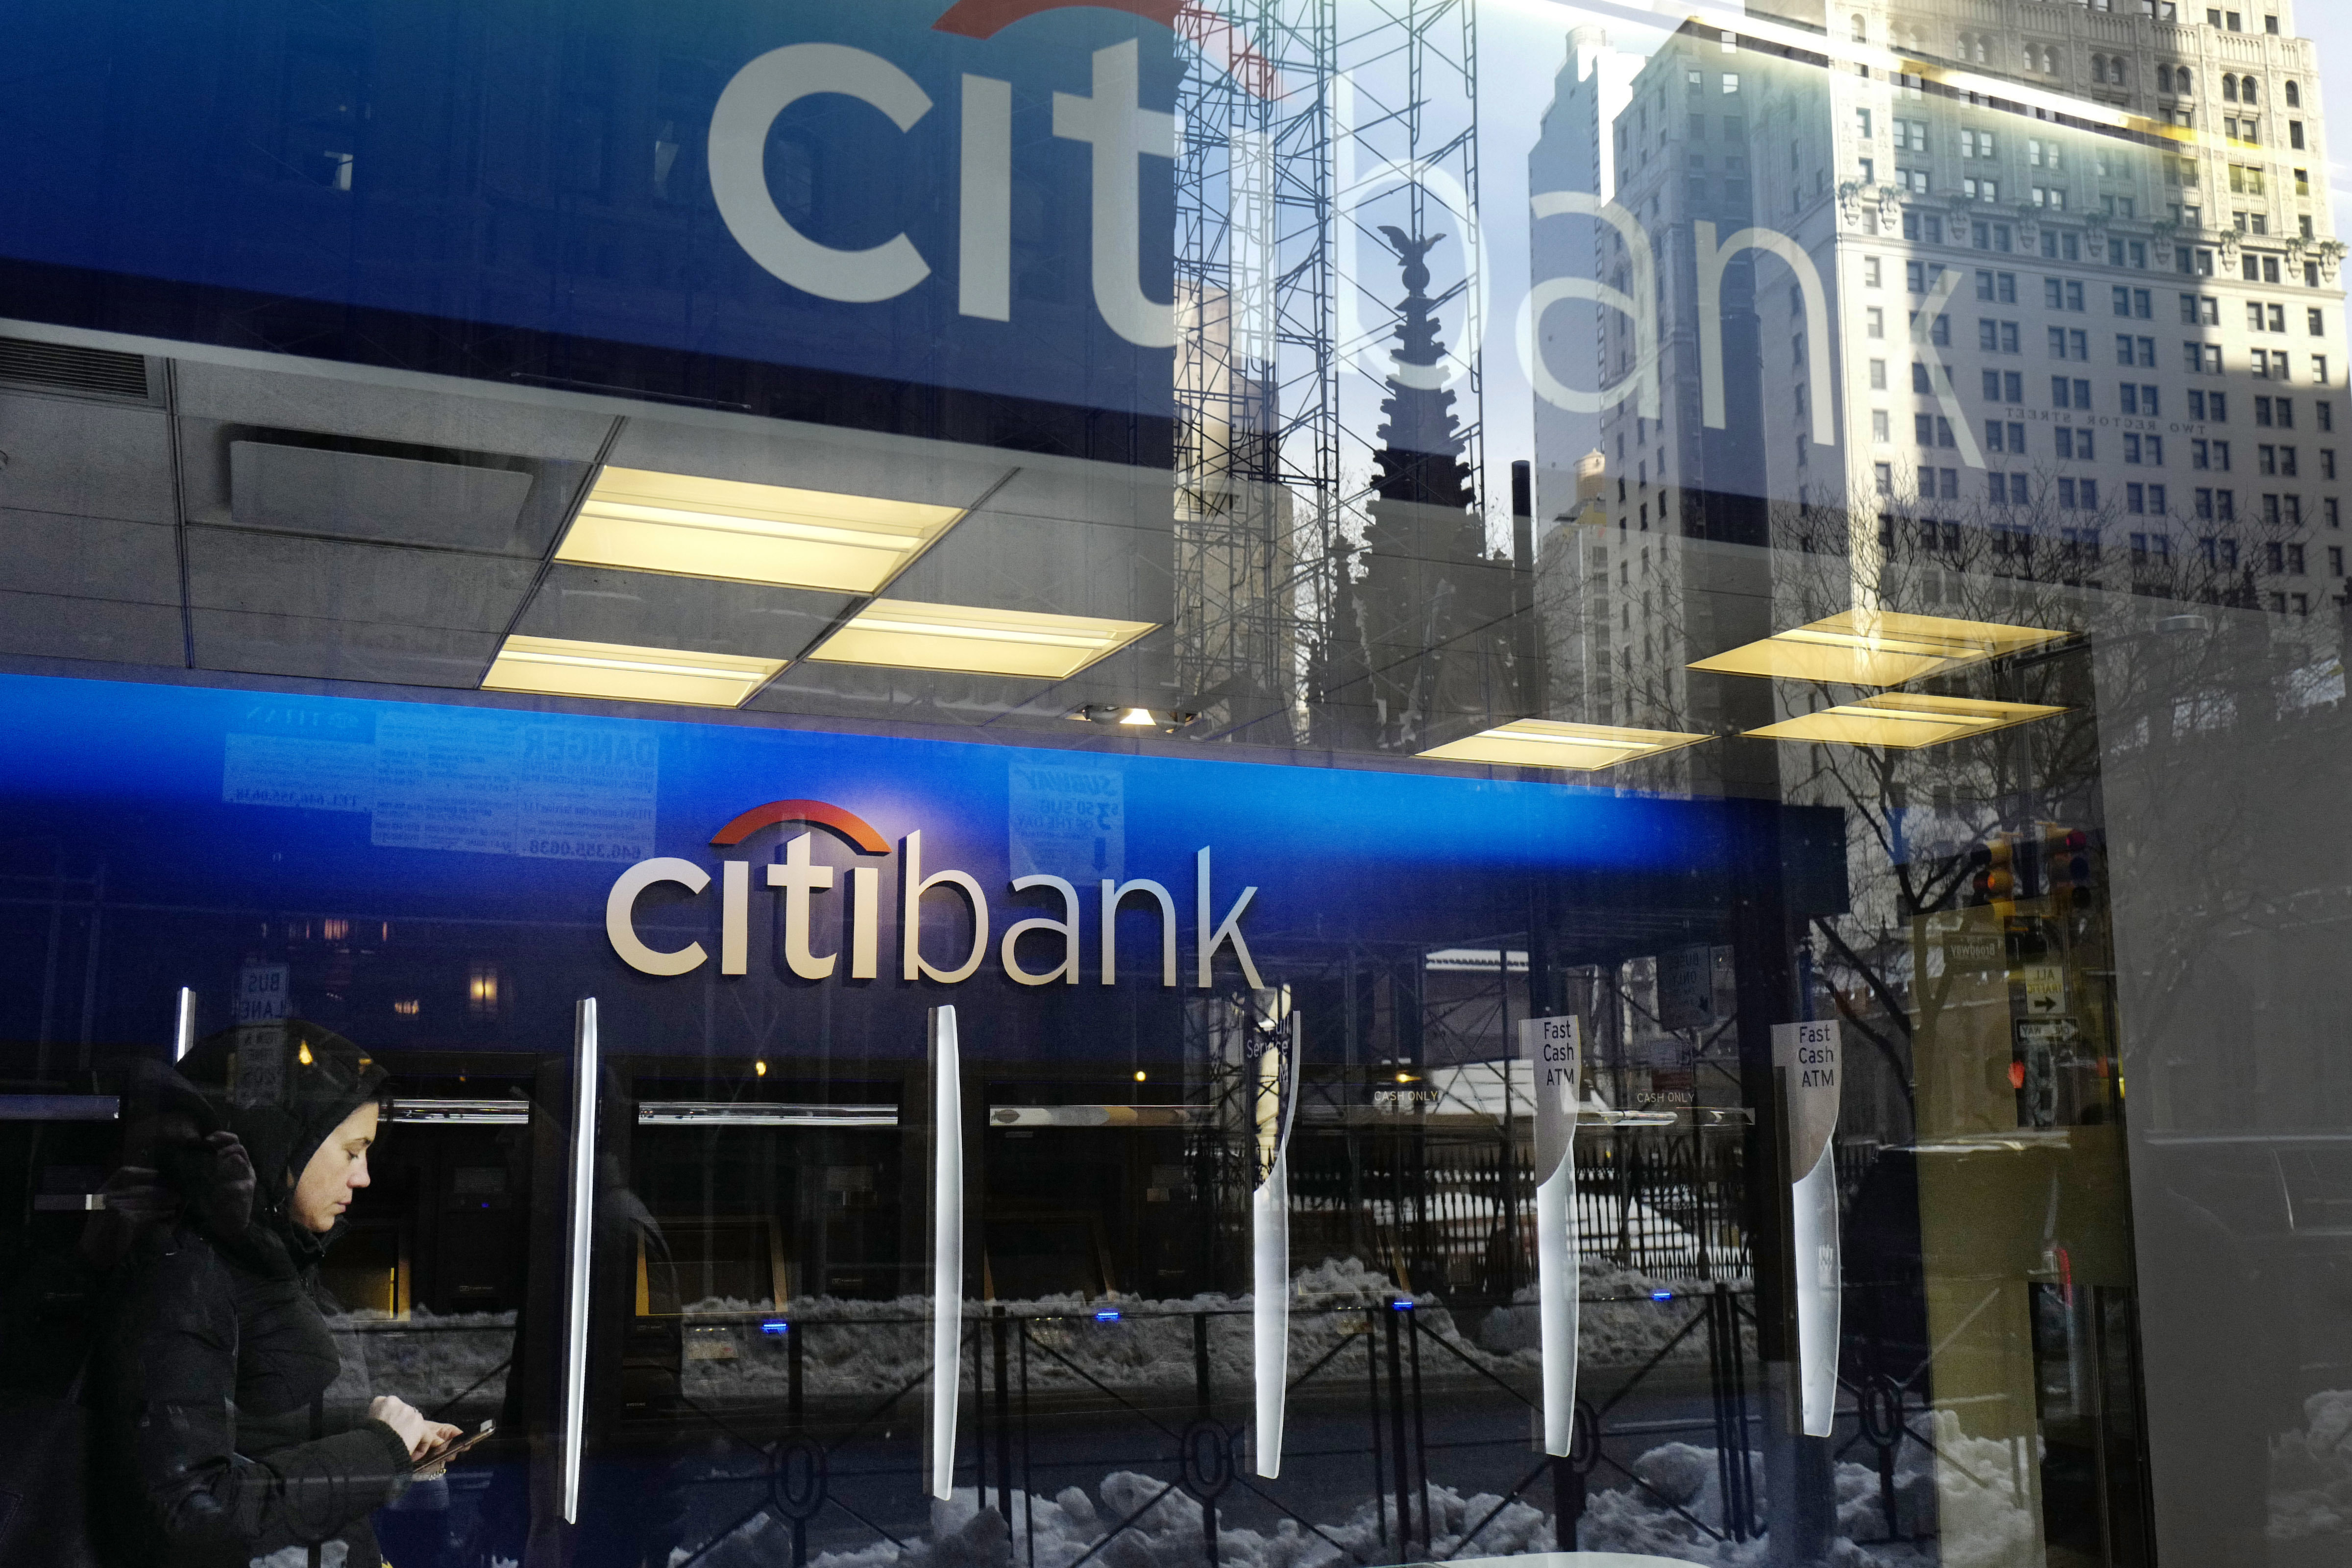 """Climate Companies Q A-1 FILE - In this Thursday, March 16, 2017, file photo, a customer enters a Citibank branch, in New York. President Donald Trump's decision to abandon the Paris climate agreement will have different impacts on different US companies, depending on what they make and whether they do business overseas. Citibank, which had urged Trump to keep the U.S. in the accord, said Friday, June 9, that it would """"remain very focused on our own efforts to protect the environment,"""" including its commitment to finance $100 billion in clean energy, infrastructure and technology projects. (AP Photo/Mark Lennihan, File)"""